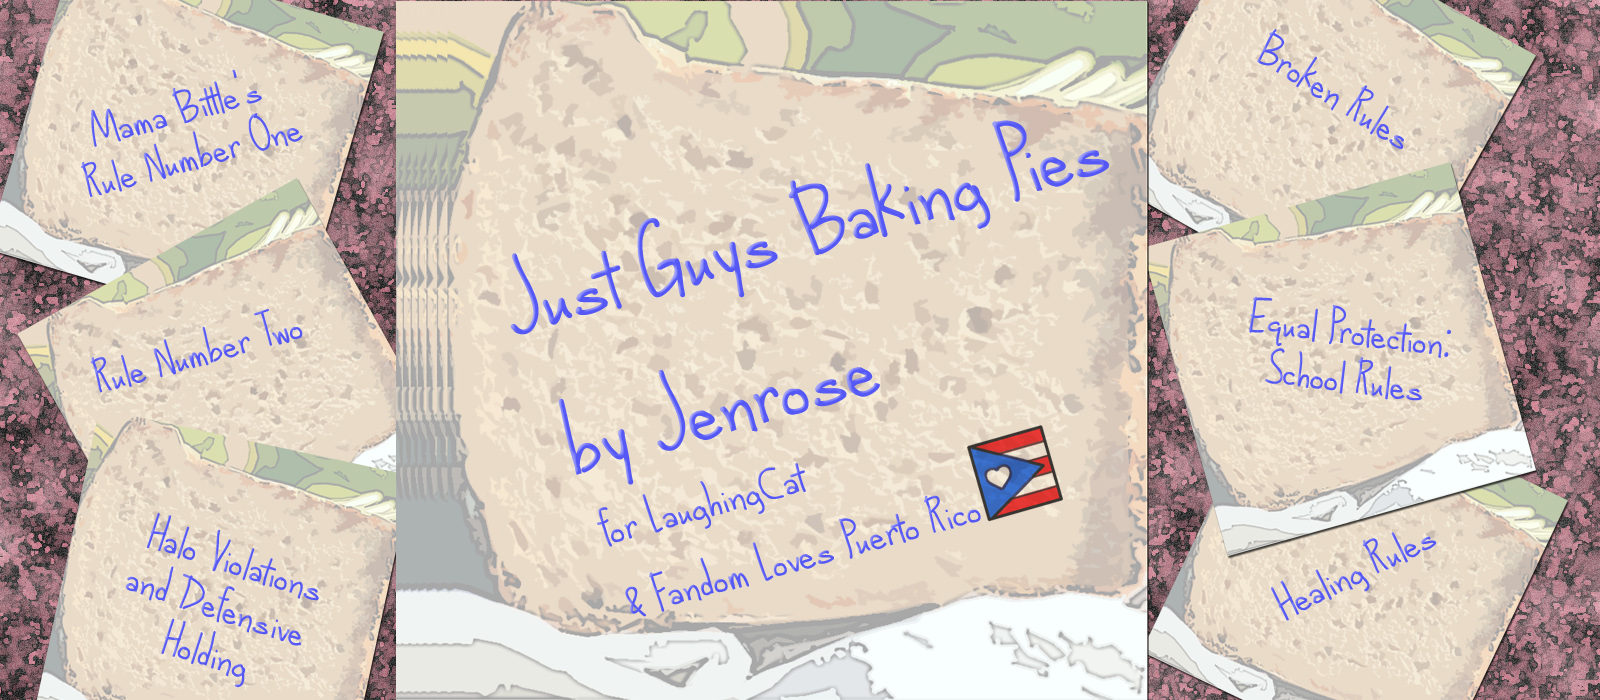 "Stylized stationery with a faded picture of bread on it that looks similar to post it notes forms the bulk of the images, with writing on each note. In the center, a large square piece that says ""Just Guys Baking Pies by Jenrose for laughingcat and Fandom Loves Puerto Rico"" with a small picture of the Puerto rican flag with a heart rather than a star in the blue triangle. To each side are smaller notes, each with a title from Jenrose's Actually I Do Make The Rules fanfic series in the Check Please fandom. The stationery represents the notes that Bitty leaves in lunches, and the titles are all rendered to look like blue ball point pen printed by hand."